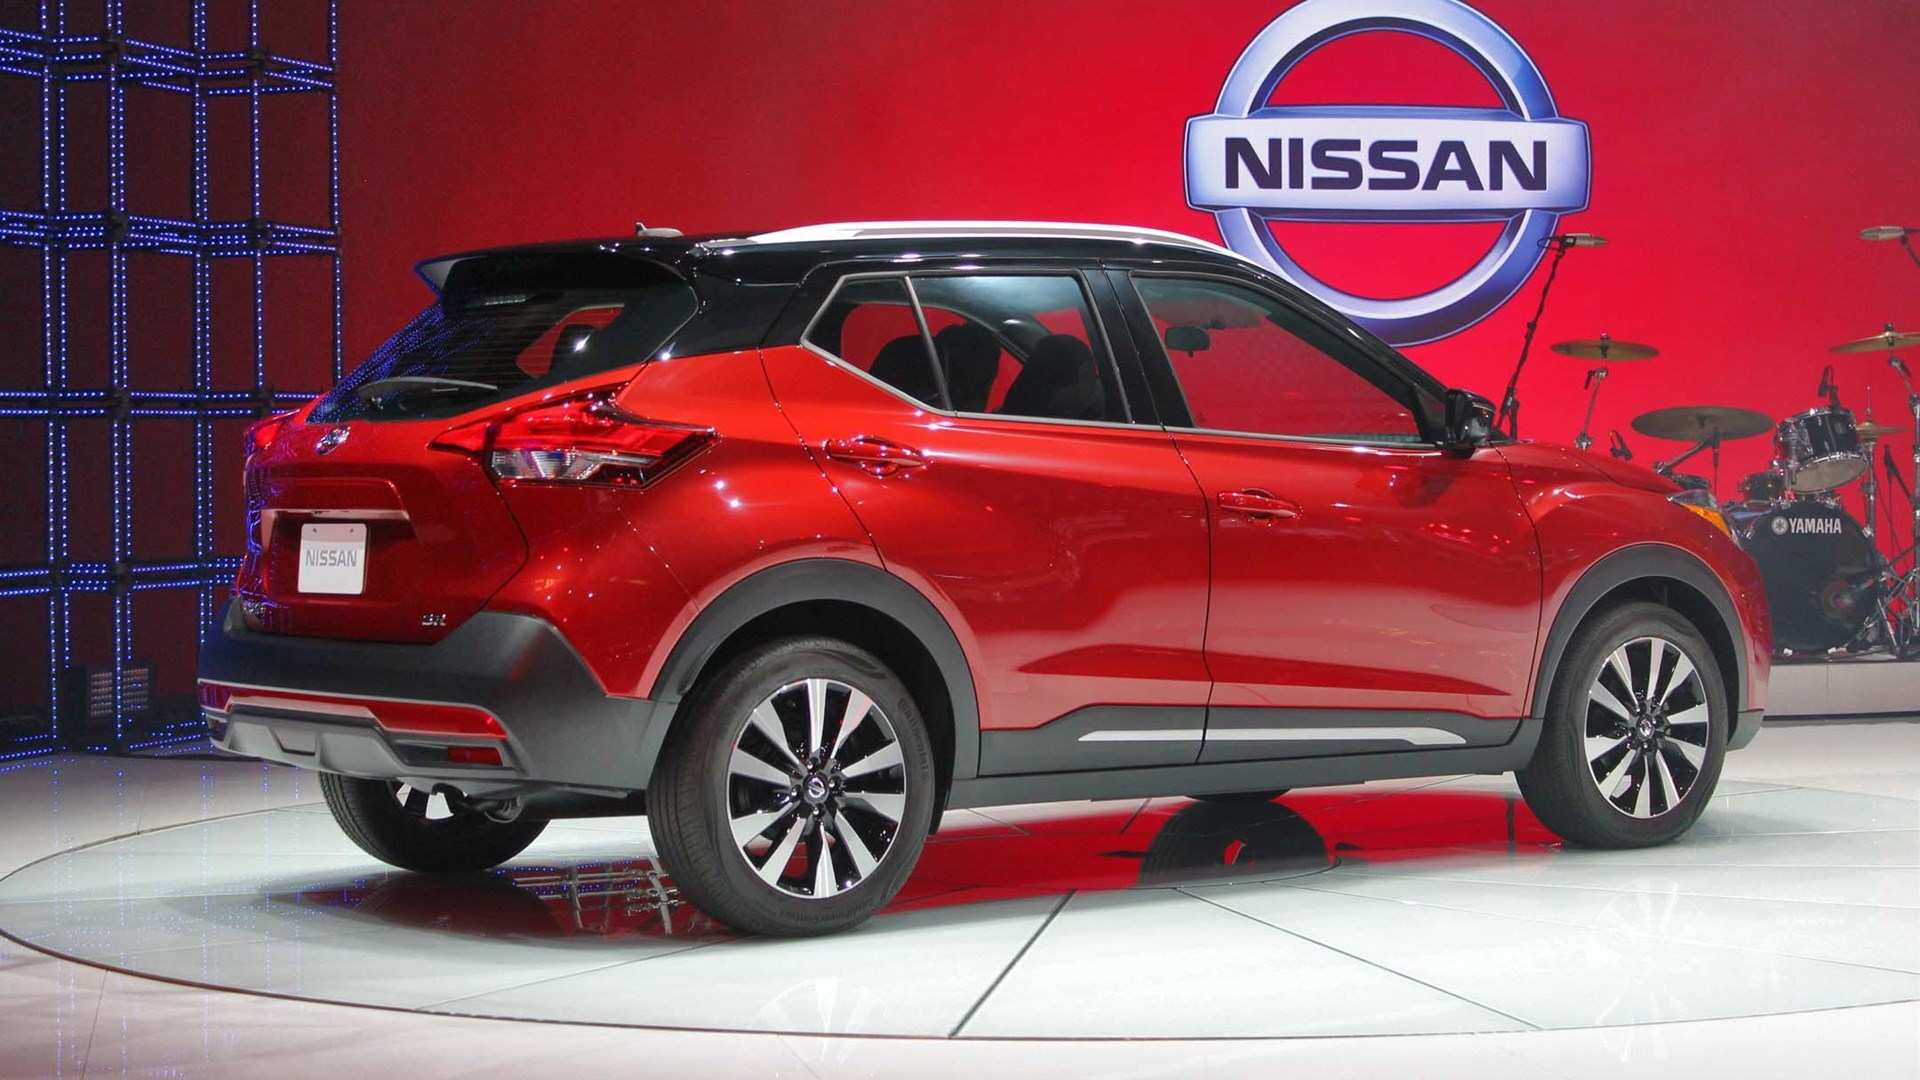 42 Great Nissan Usa 2020 Price and Review with Nissan Usa 2020